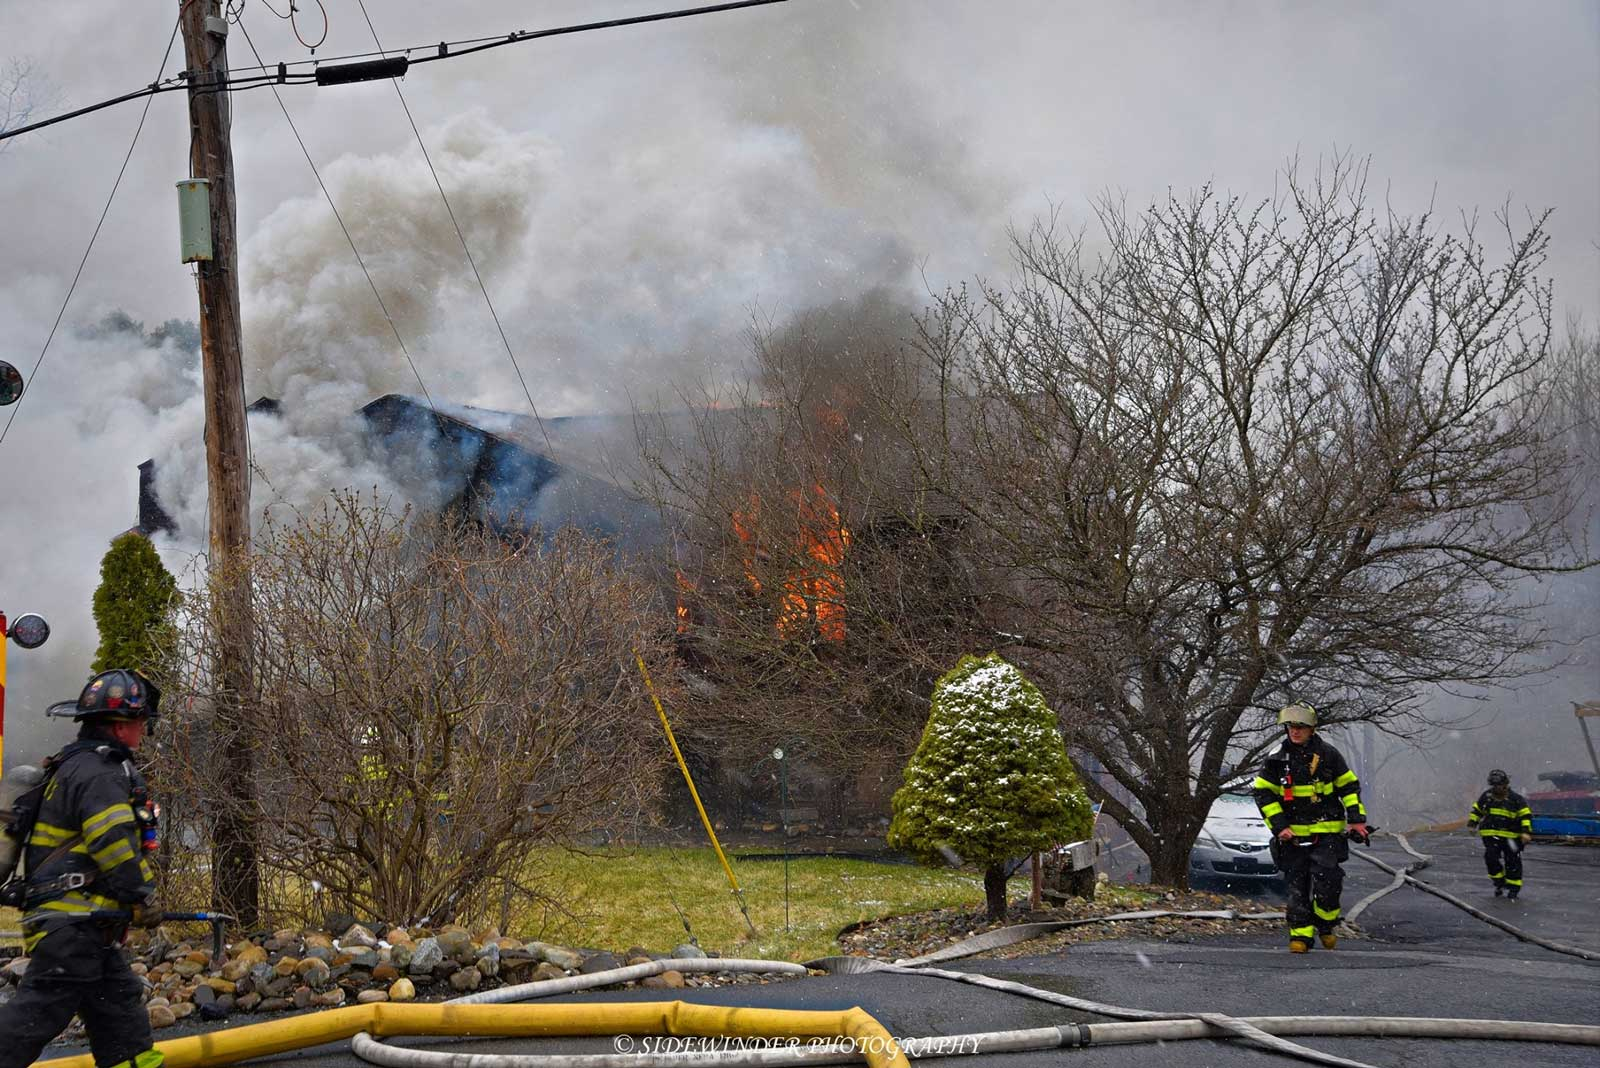 A view of hoselines and fire at the scene